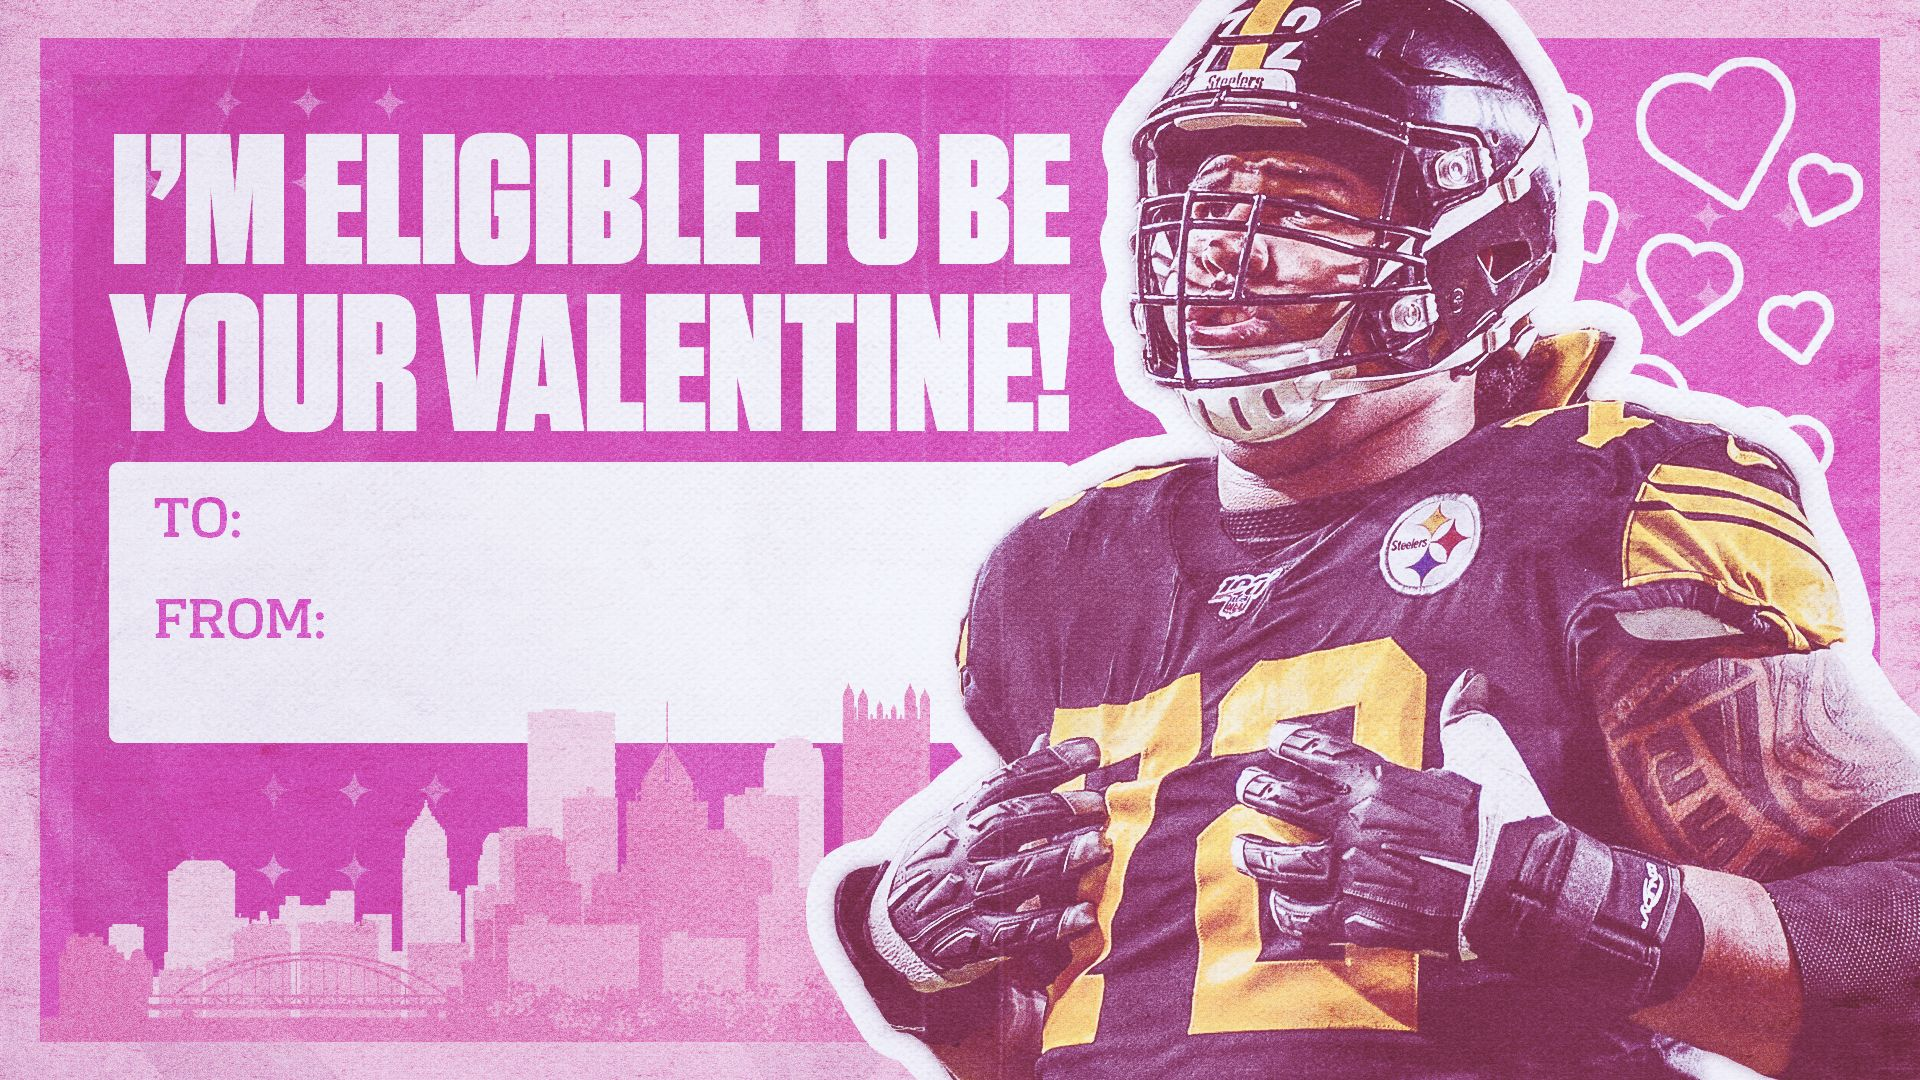 021420-Valentine's-Day---I'm-Eligible-to-be-your-valentine